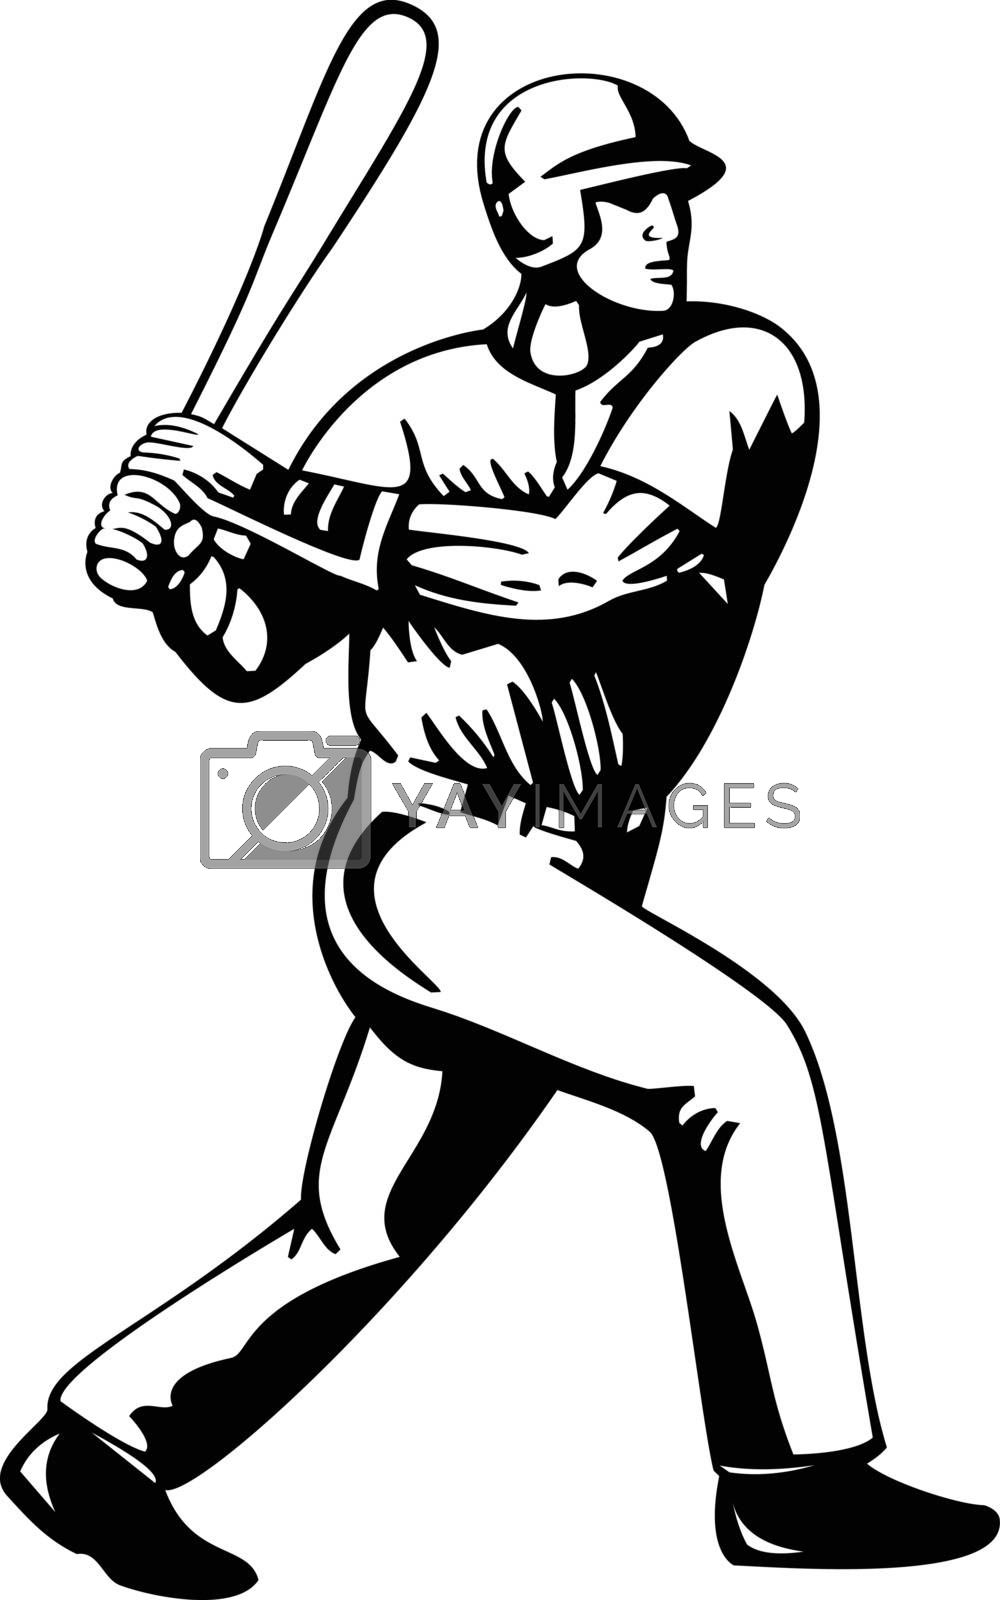 Retro style illustration of a baseball player batting viewed from side on isolated background done in black and white.